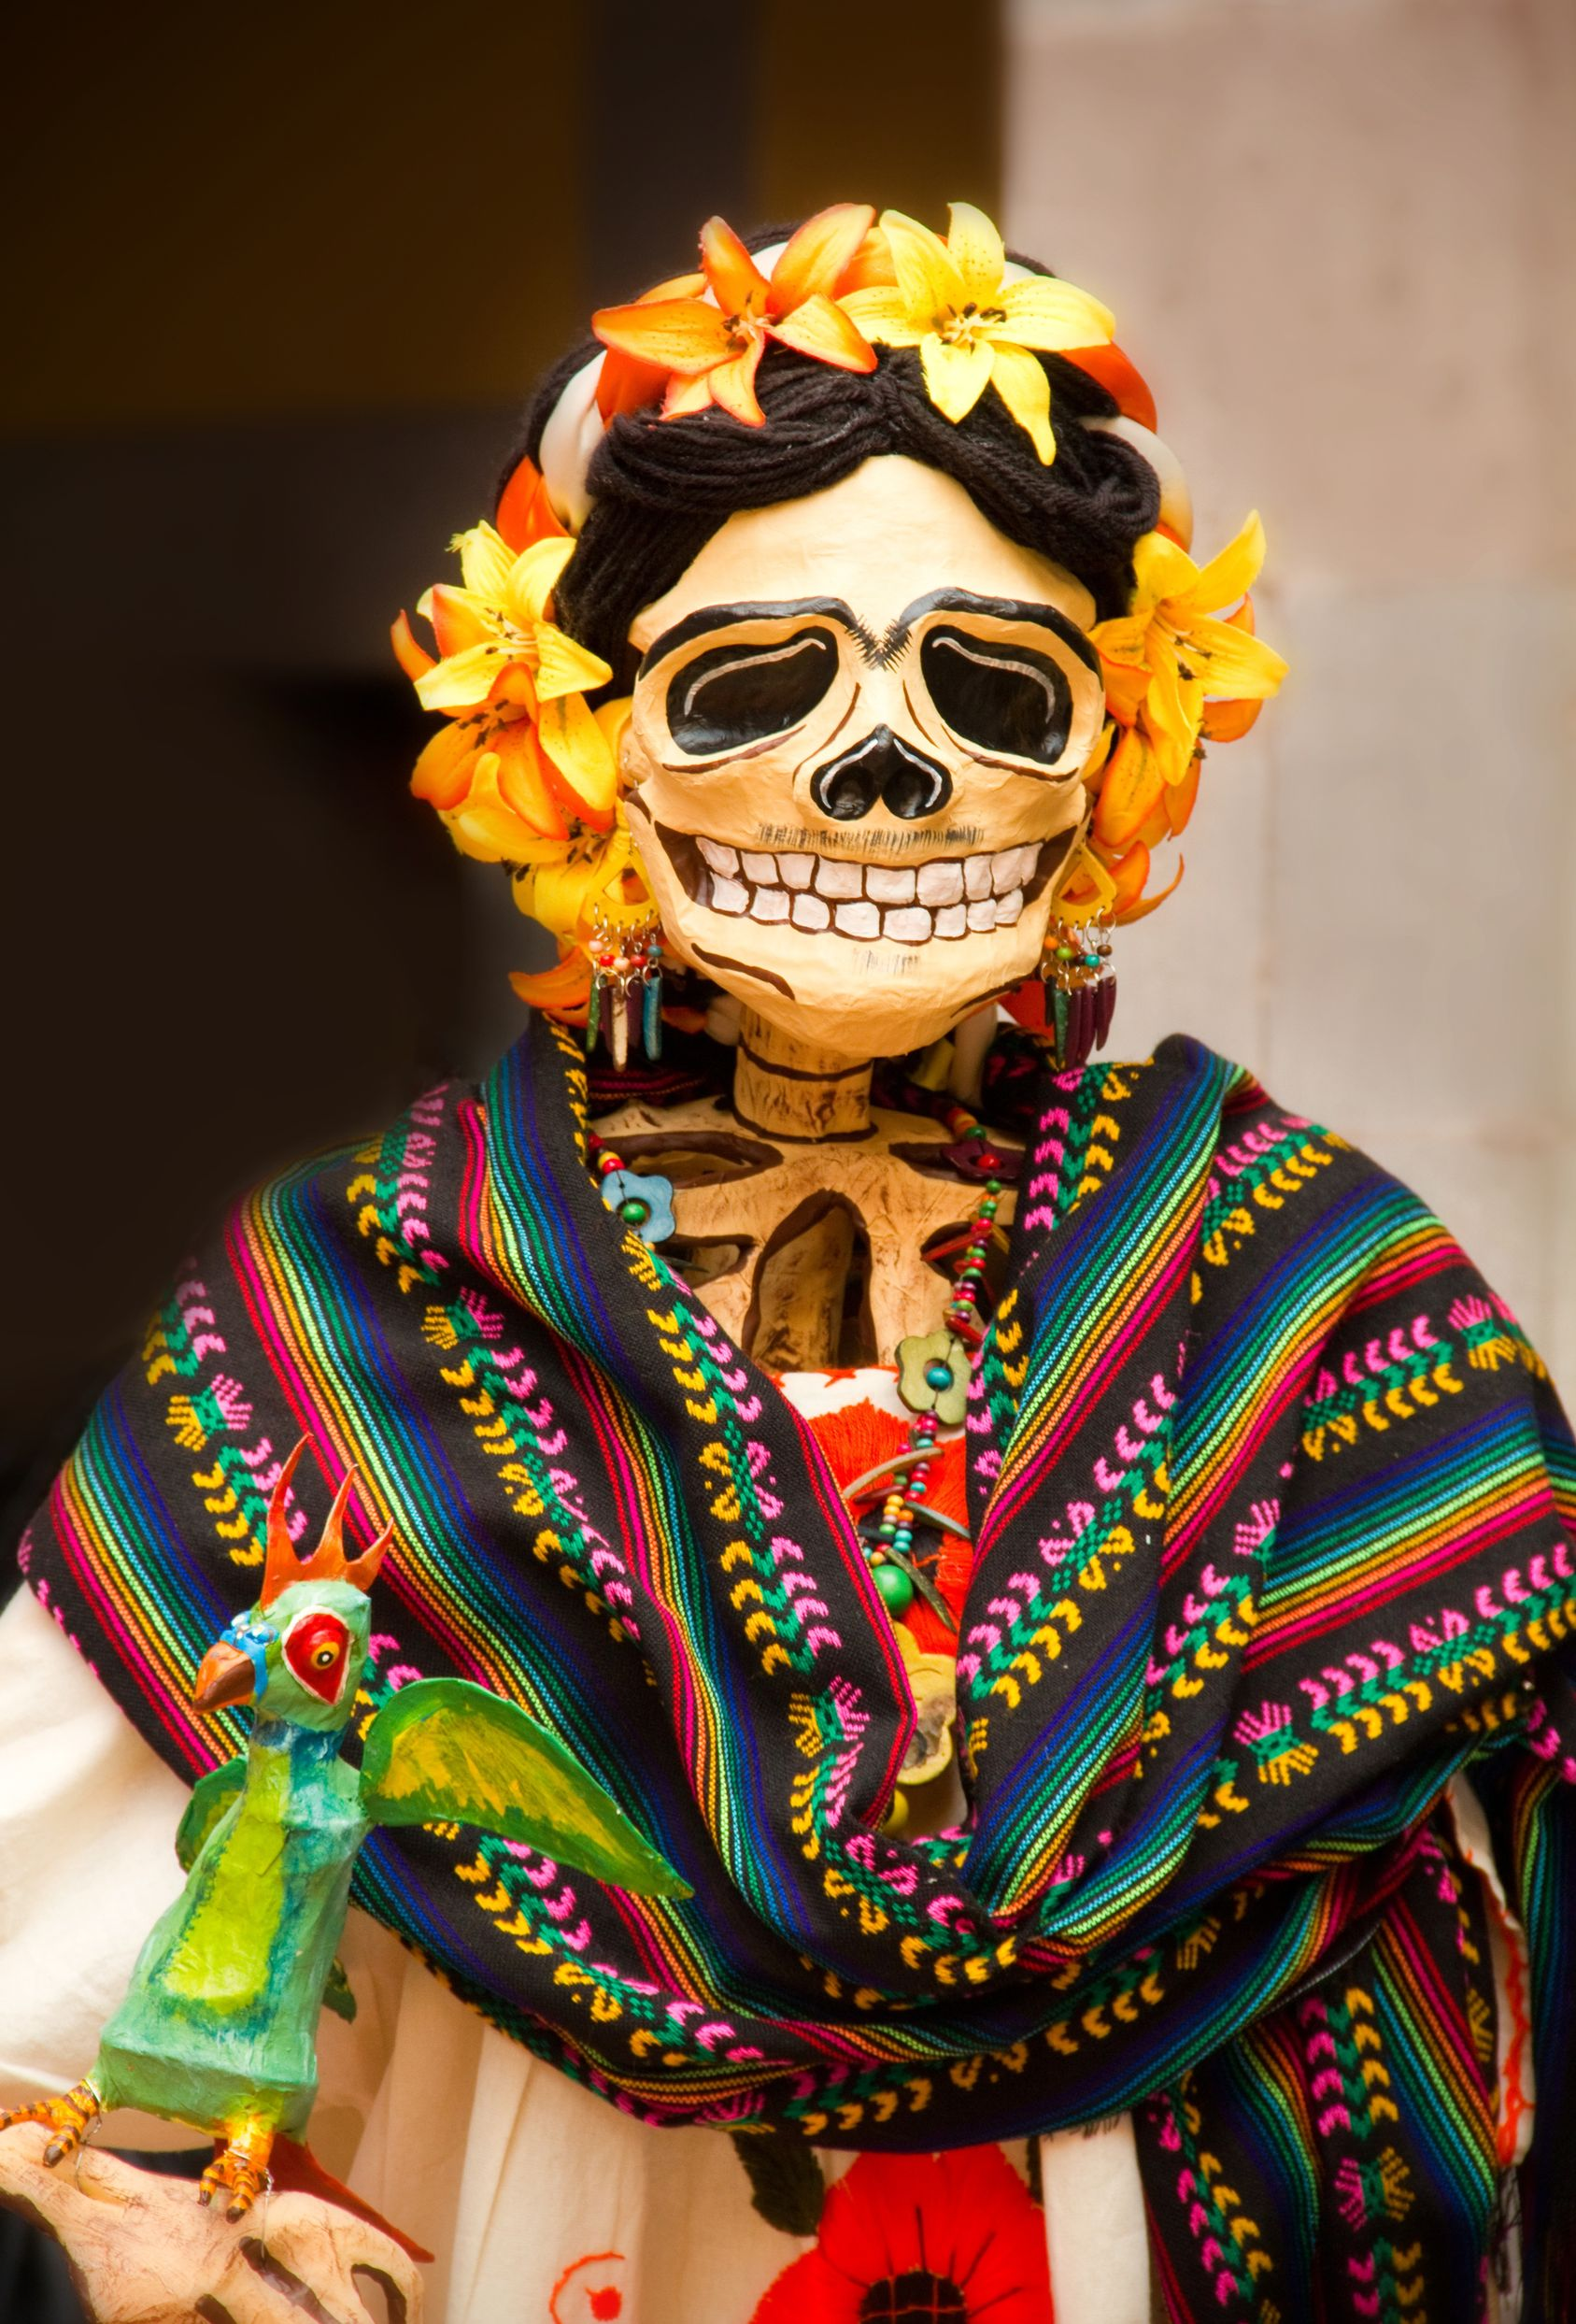 https://i1.wp.com/www.worldfestivaldirectory.com/wp-content/uploads/2012/04/Woman-skeleton-on-Day-of-the-Dead-in-Mexico.jpg